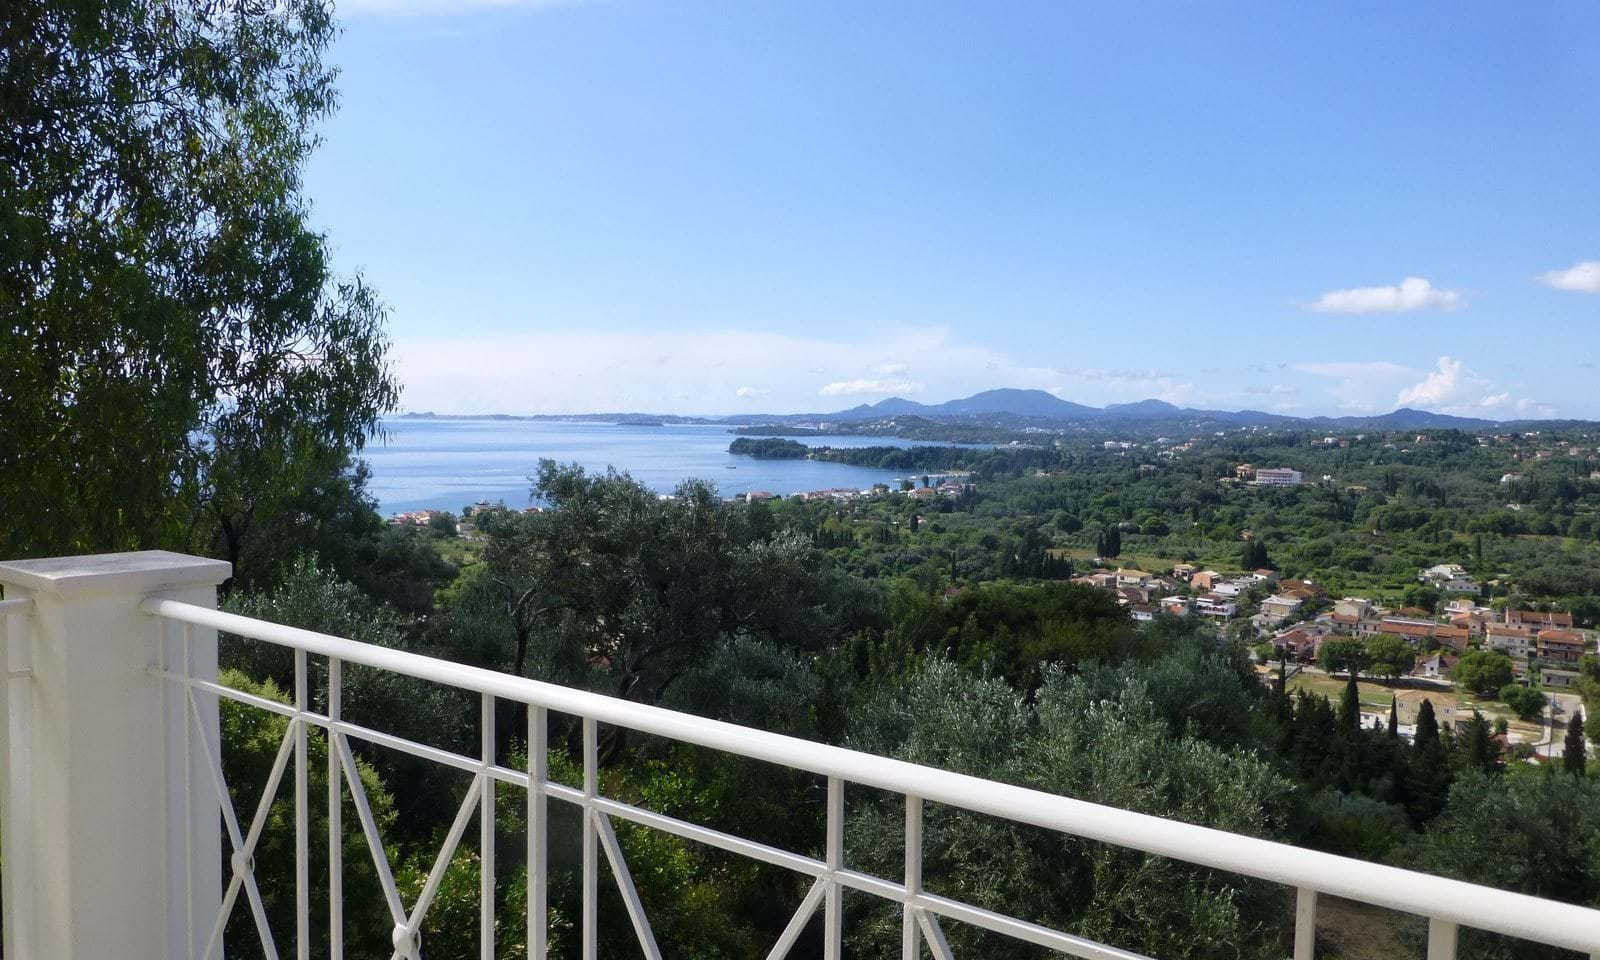 Villas for sale in Corfu, Greece